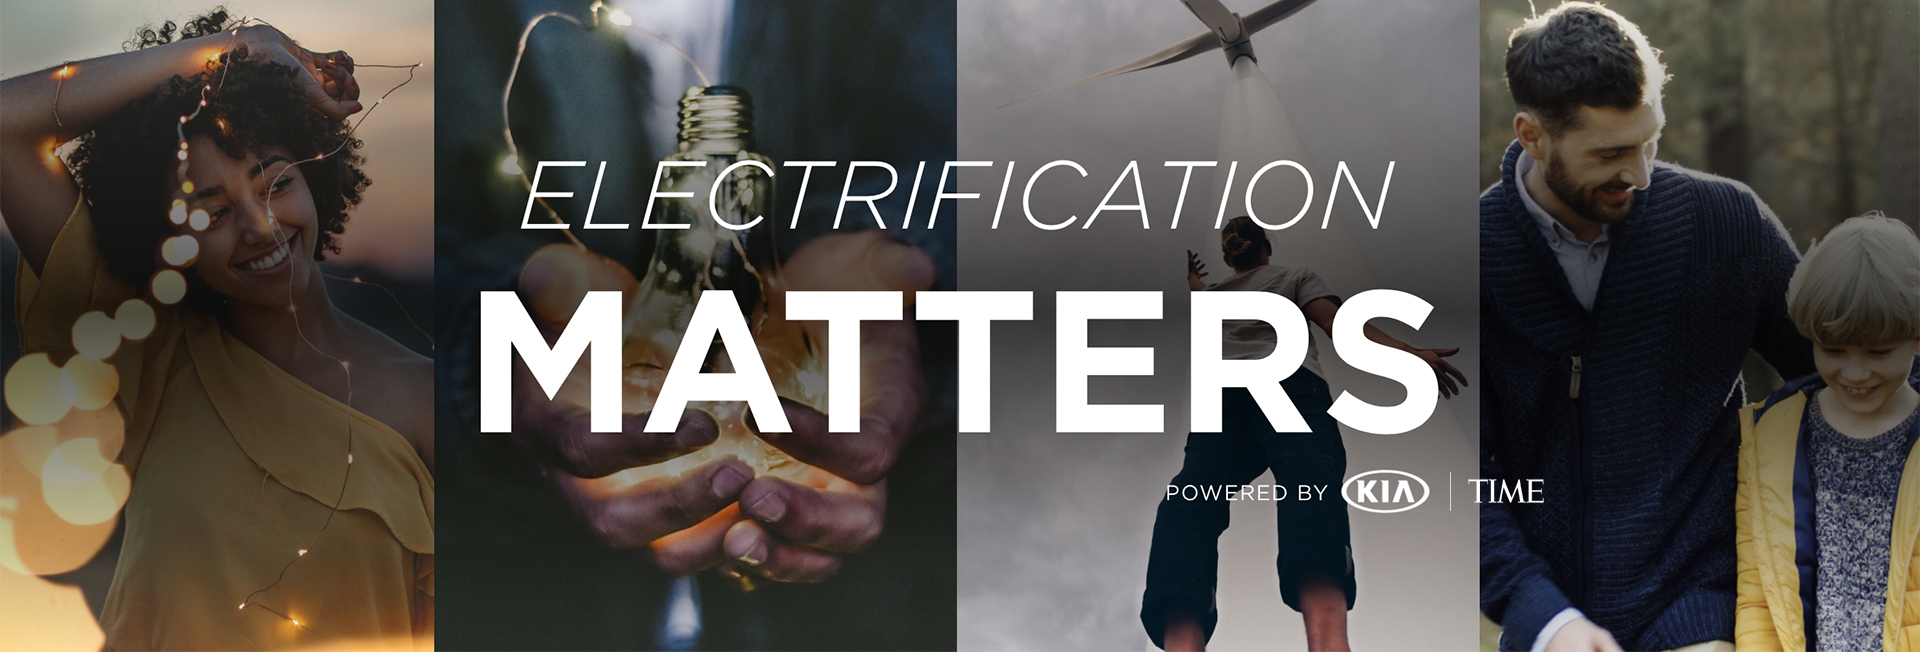 KIA - Electrification Matters